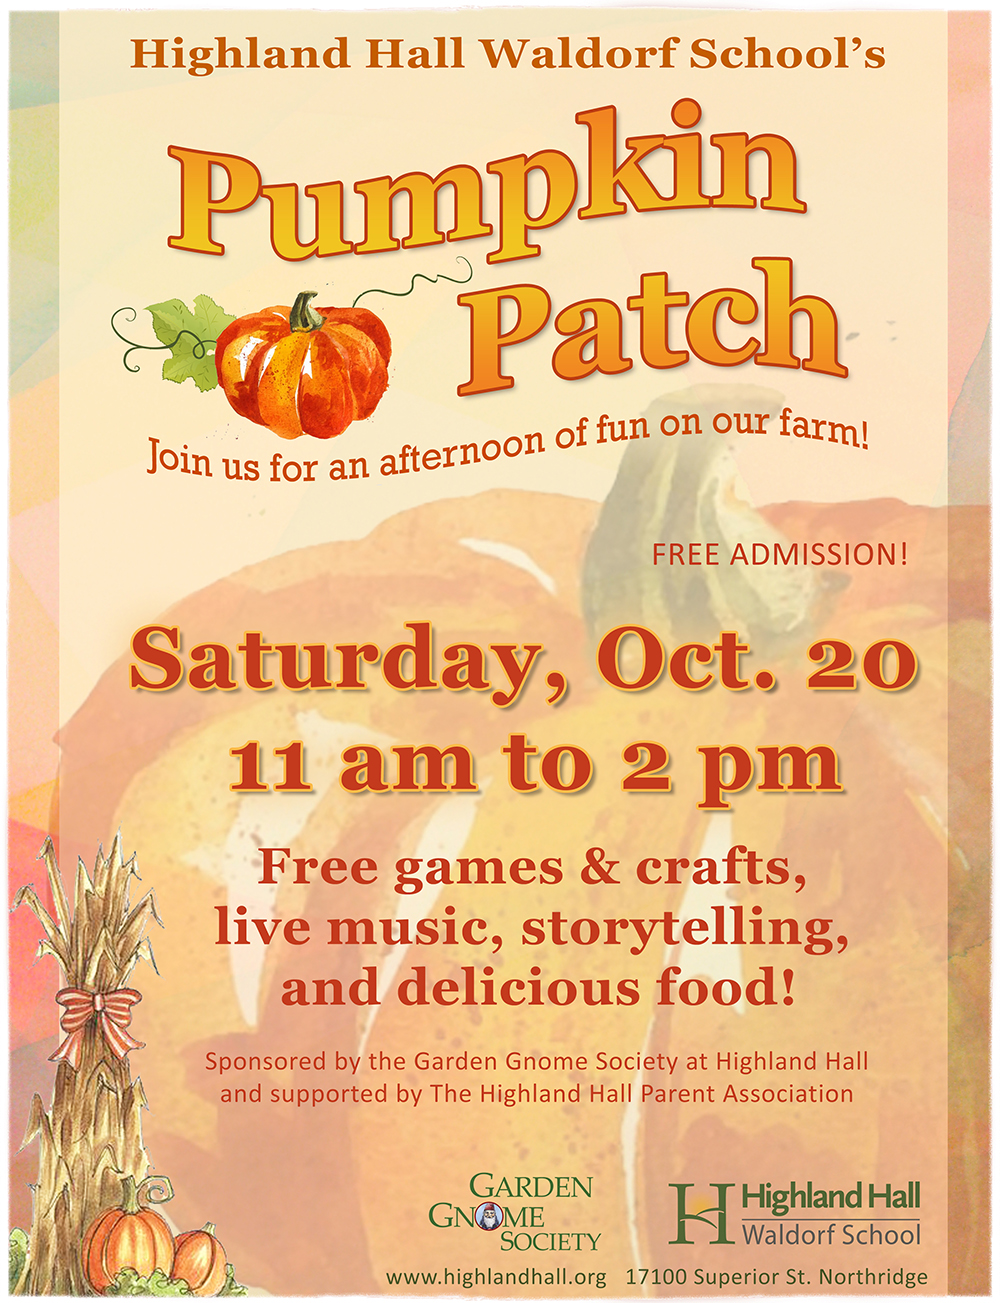 Pumpkin Patch 2018 Flyer 2 1000px.jpg